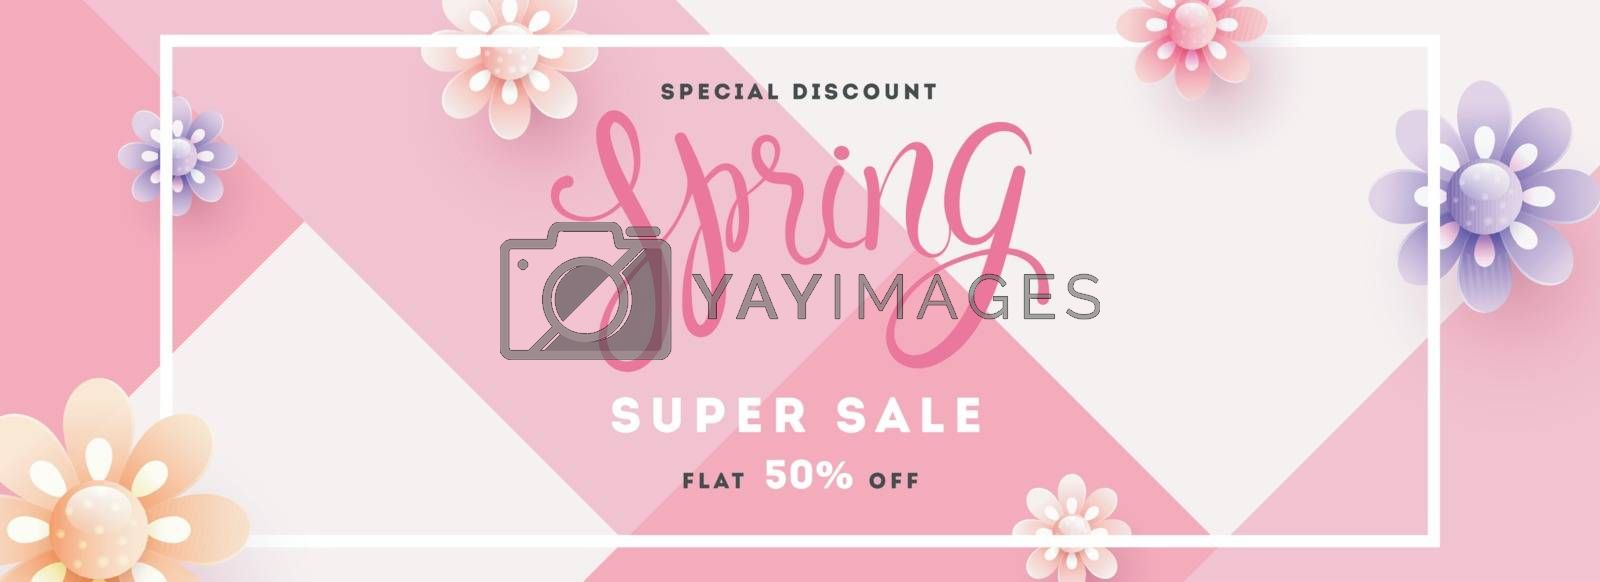 Royalty free image of Spring super sale header or banner design with 50% discount offe by aispl